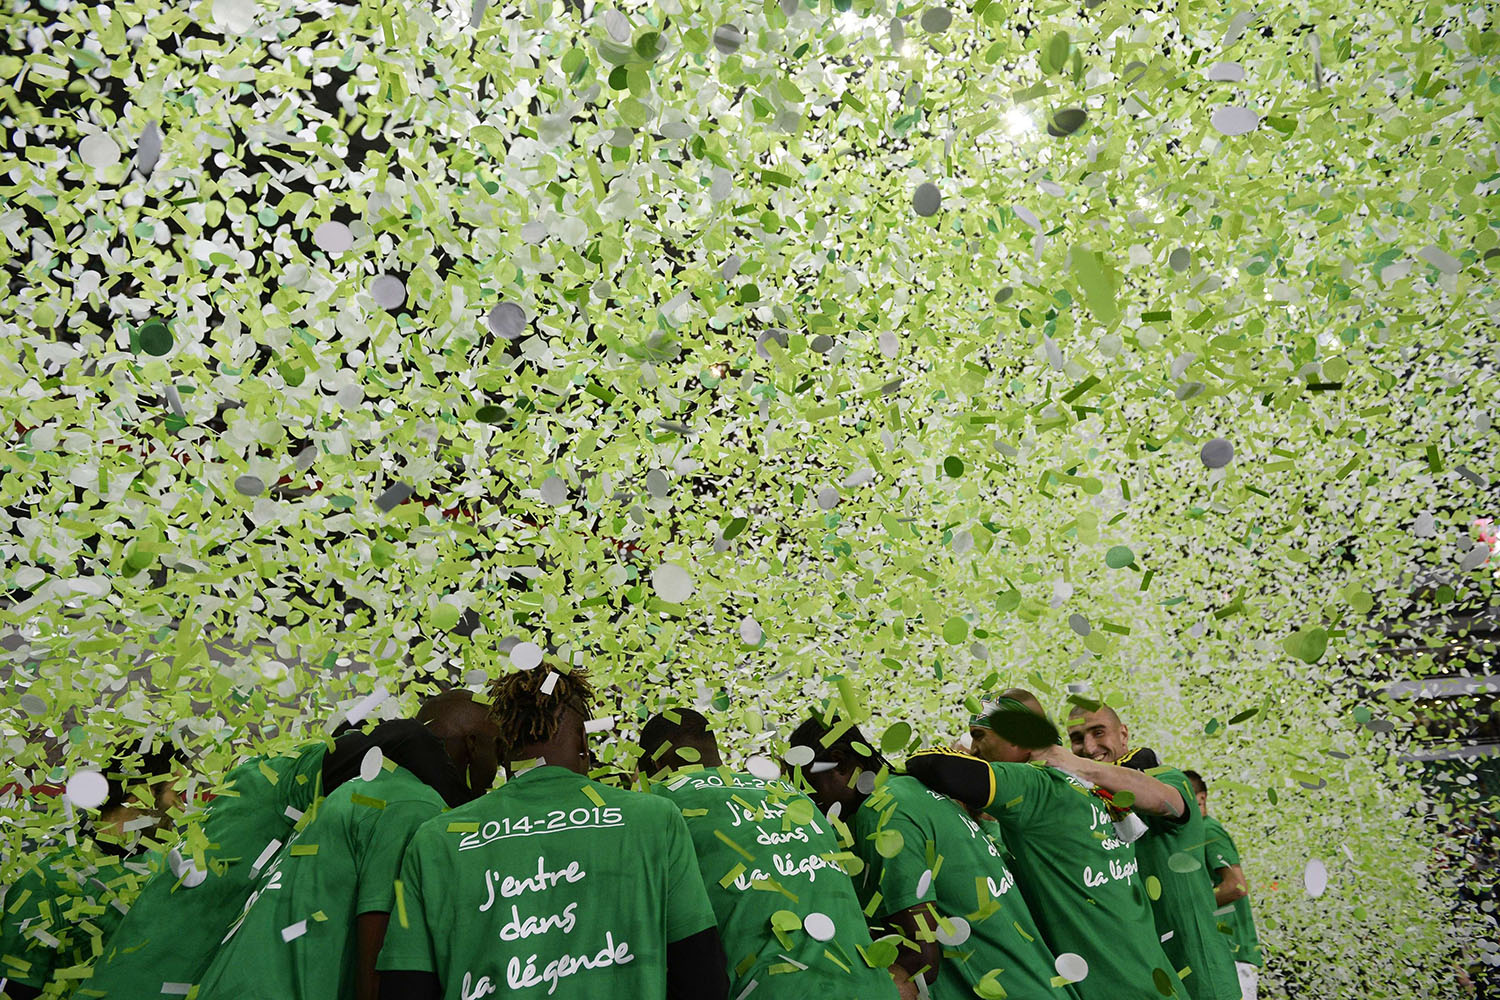 Saint-Etienne's players celebrate victory at the end of the French League football match between Saint-Etienne and Ajaccio, at the Geoffroy Guichard stadium in Saint-Etienne, central France, on May 18, 2014.